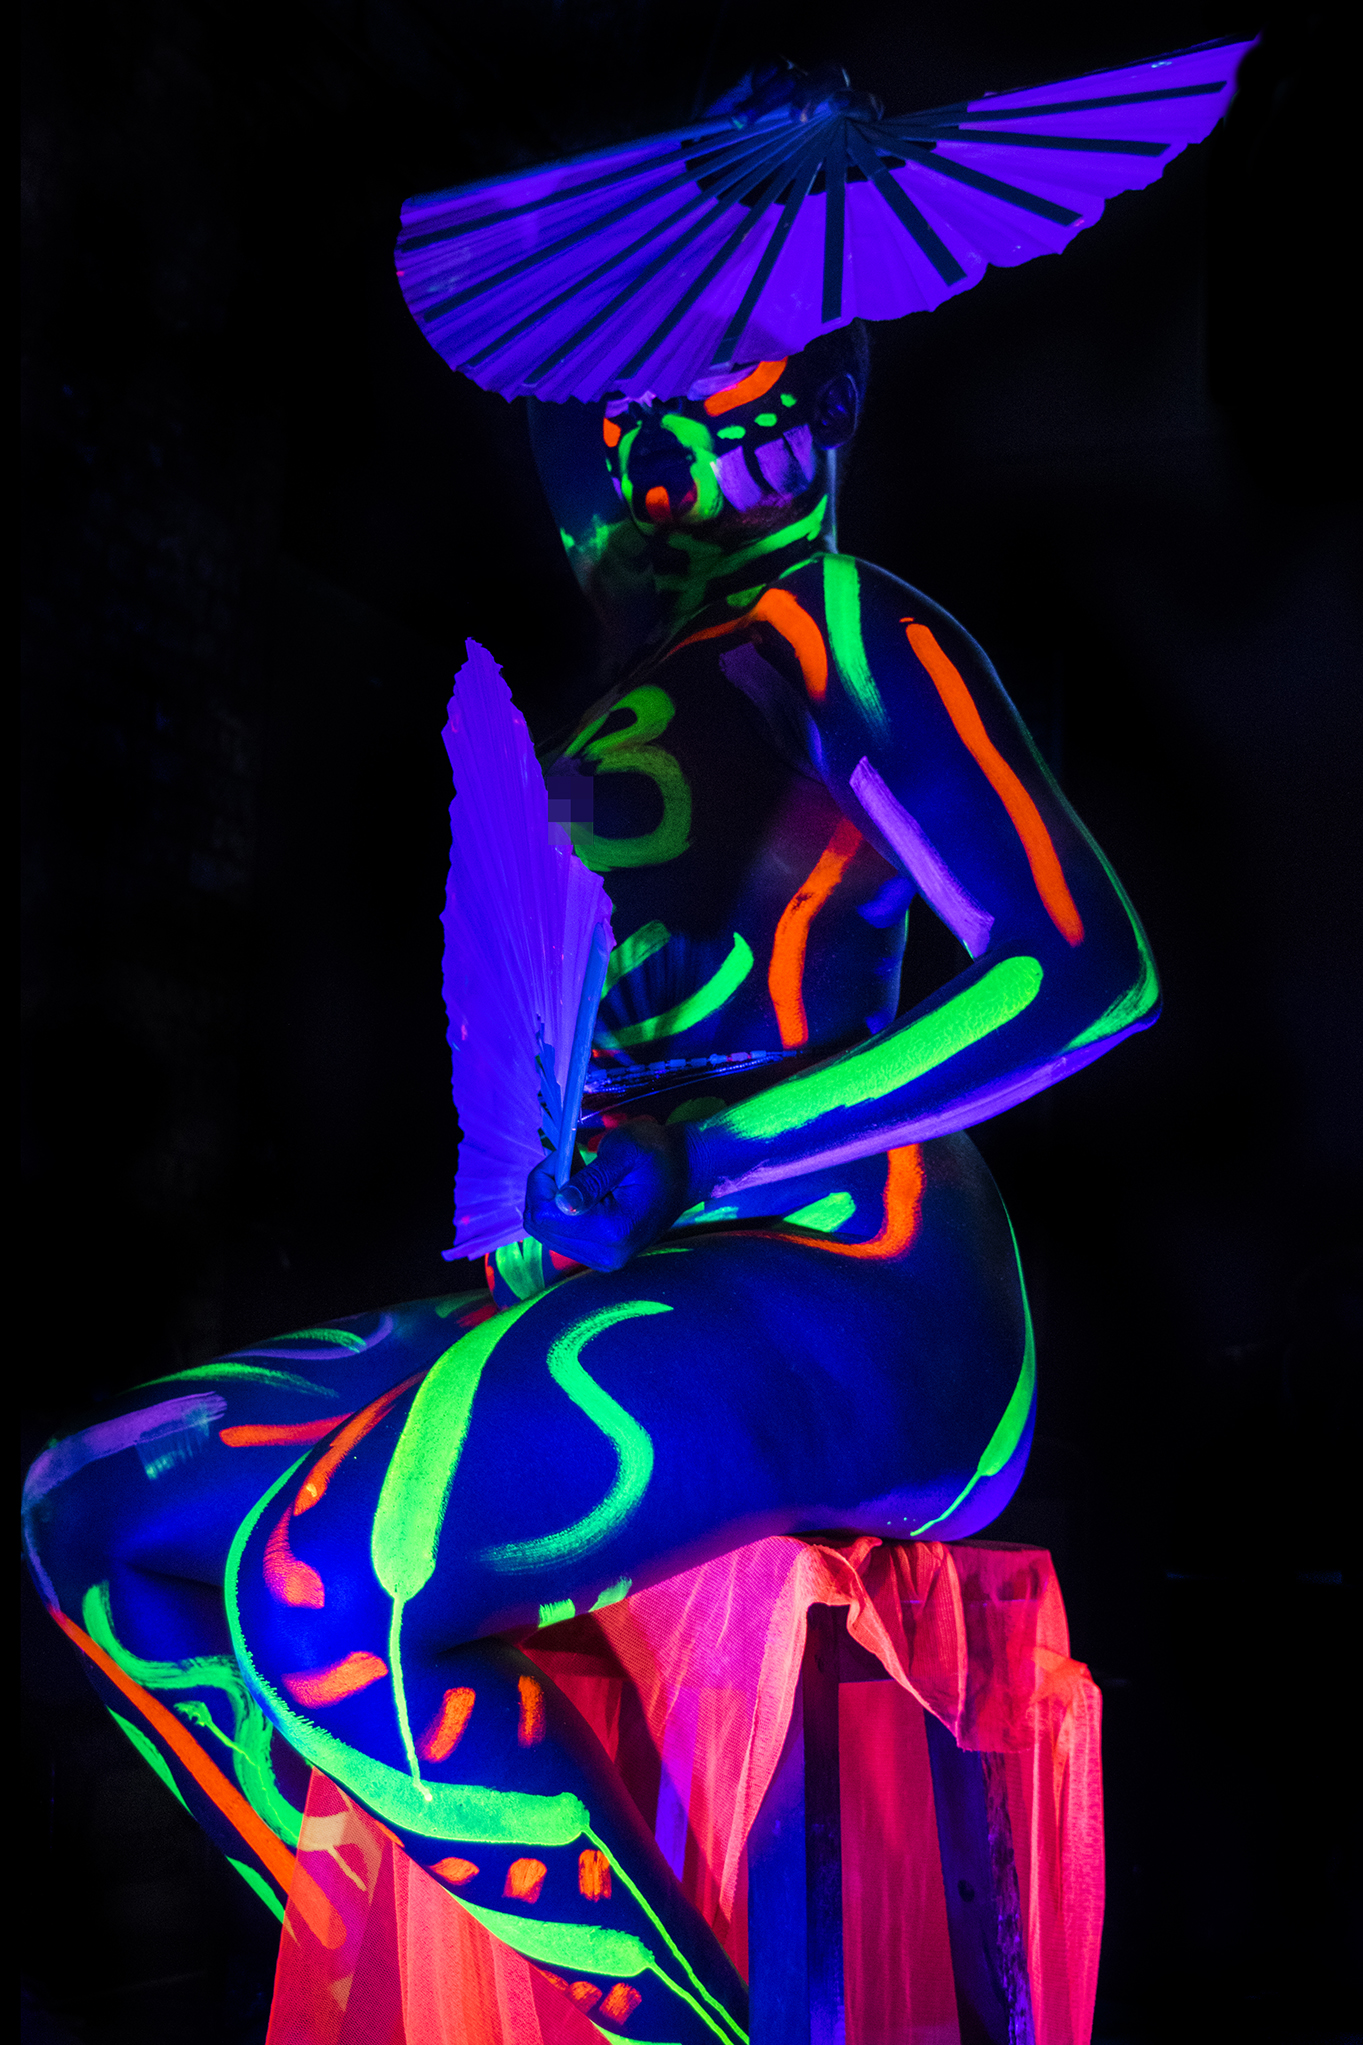 Erykah modelling for Neon Naked.